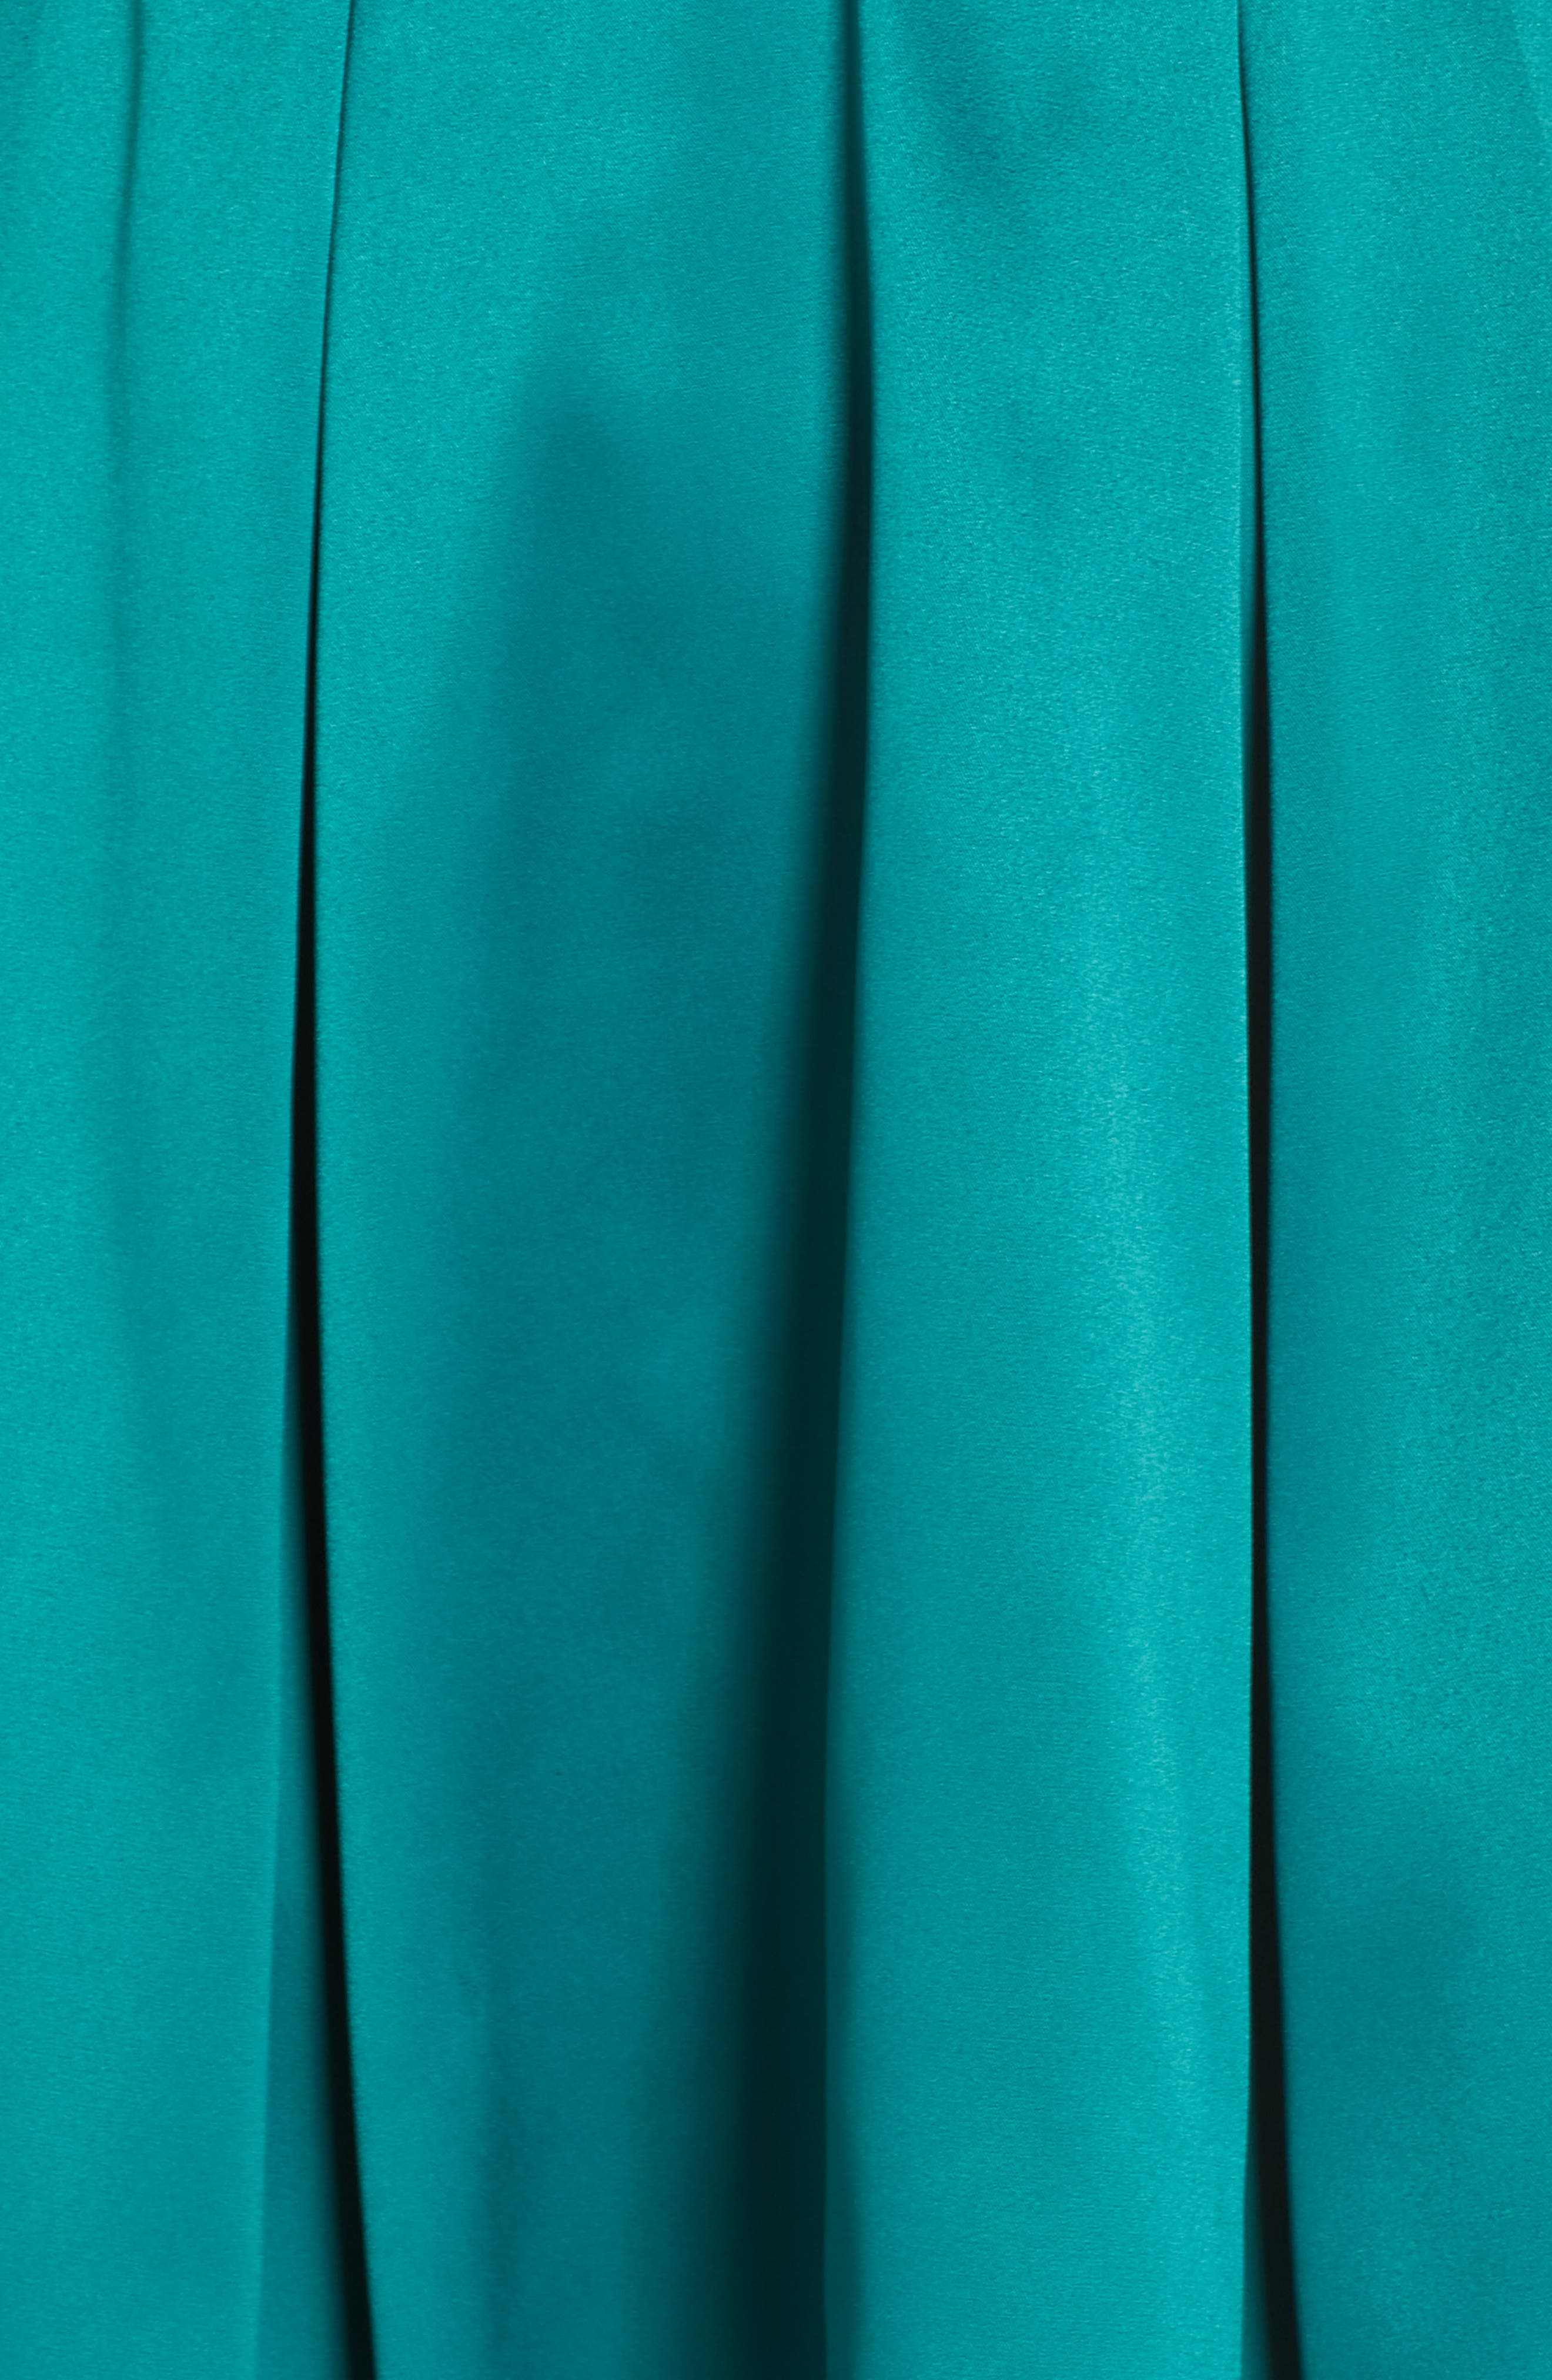 Belted Stretch Satin High/Low Dress,                             Alternate thumbnail 6, color,                             EMERALD